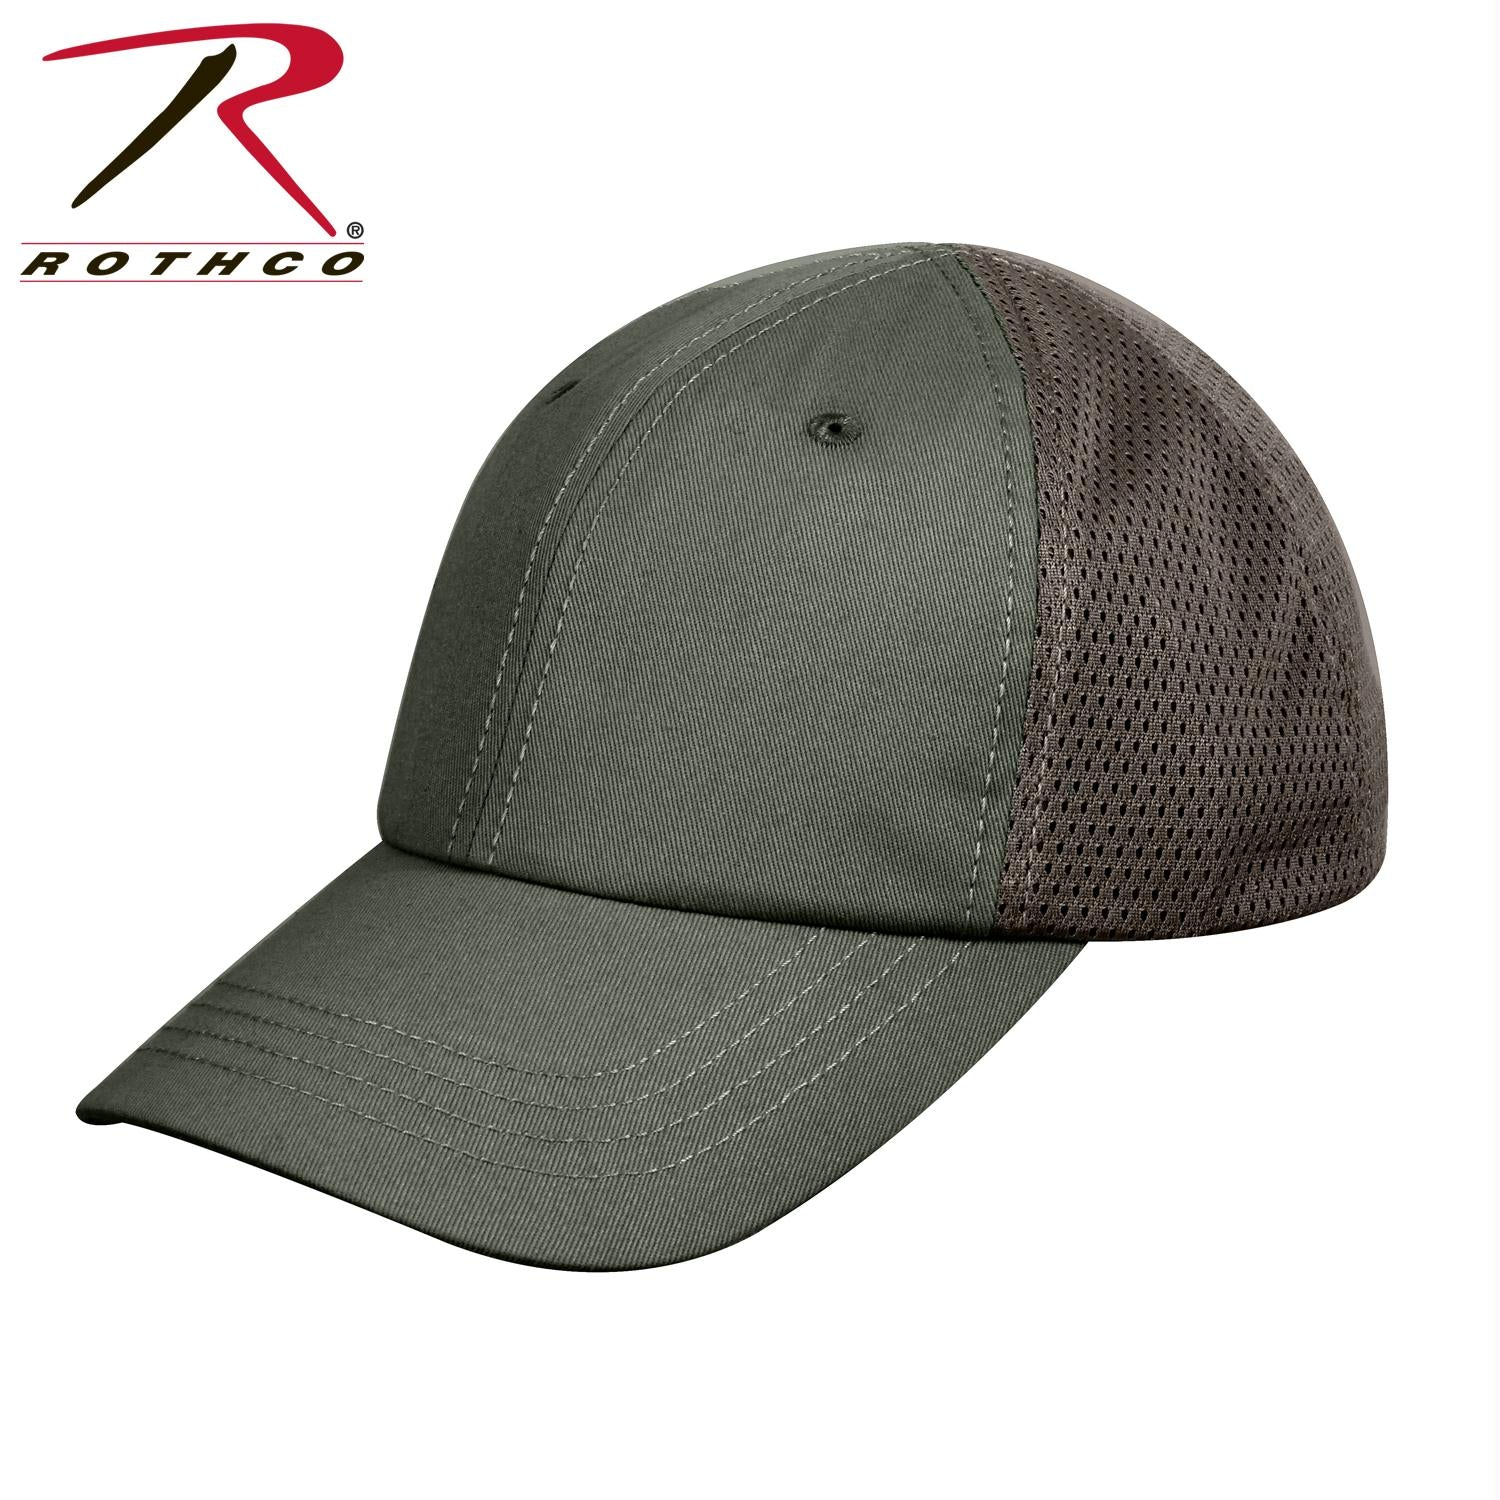 Rothco Mesh Back Tactical Cap - Olive Drab / One Size